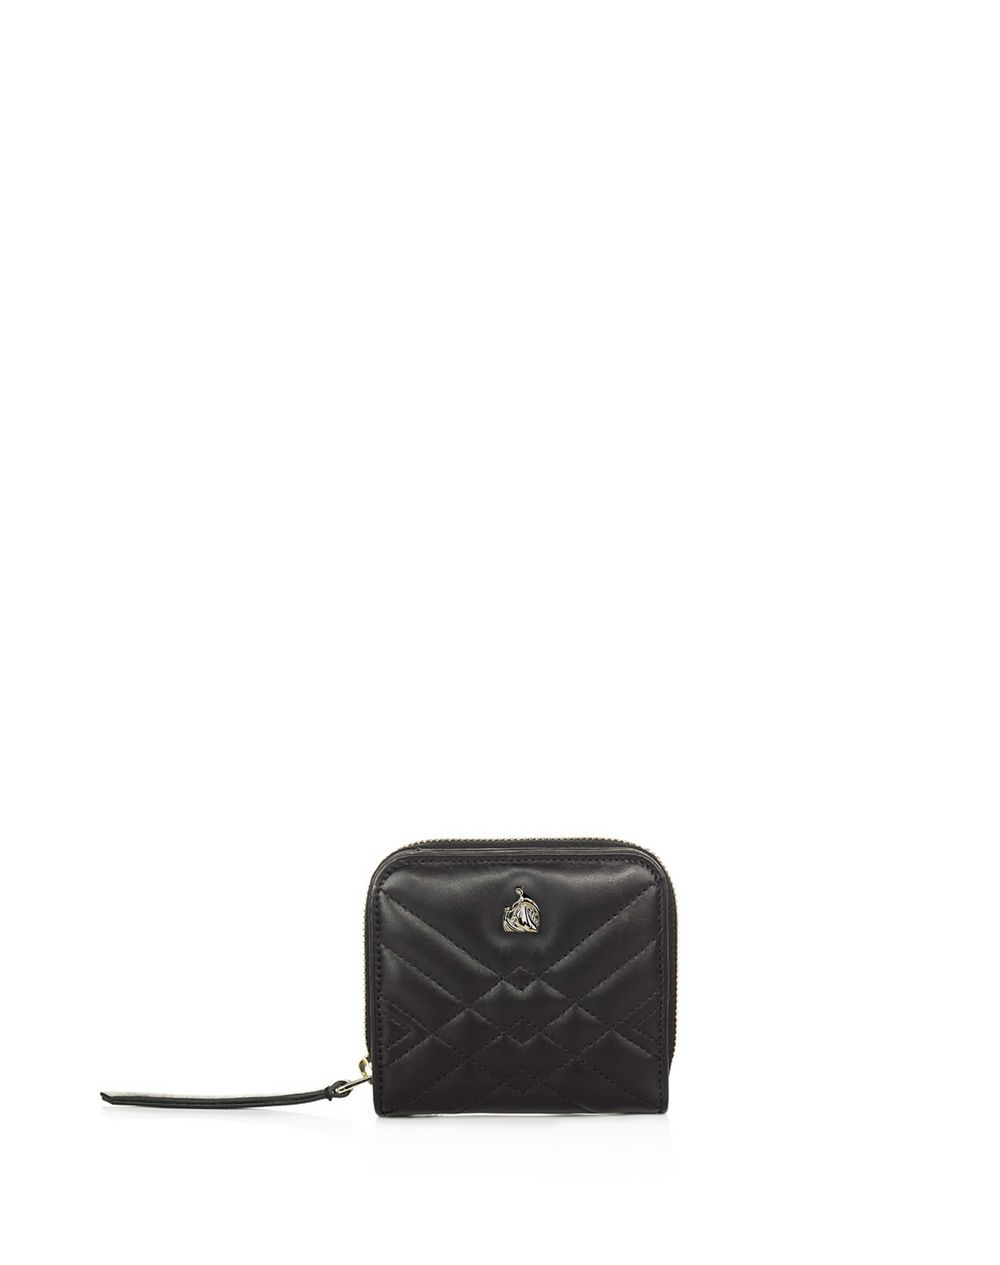 COMPACT QUILTED SUGAR PURSE - Lanvin